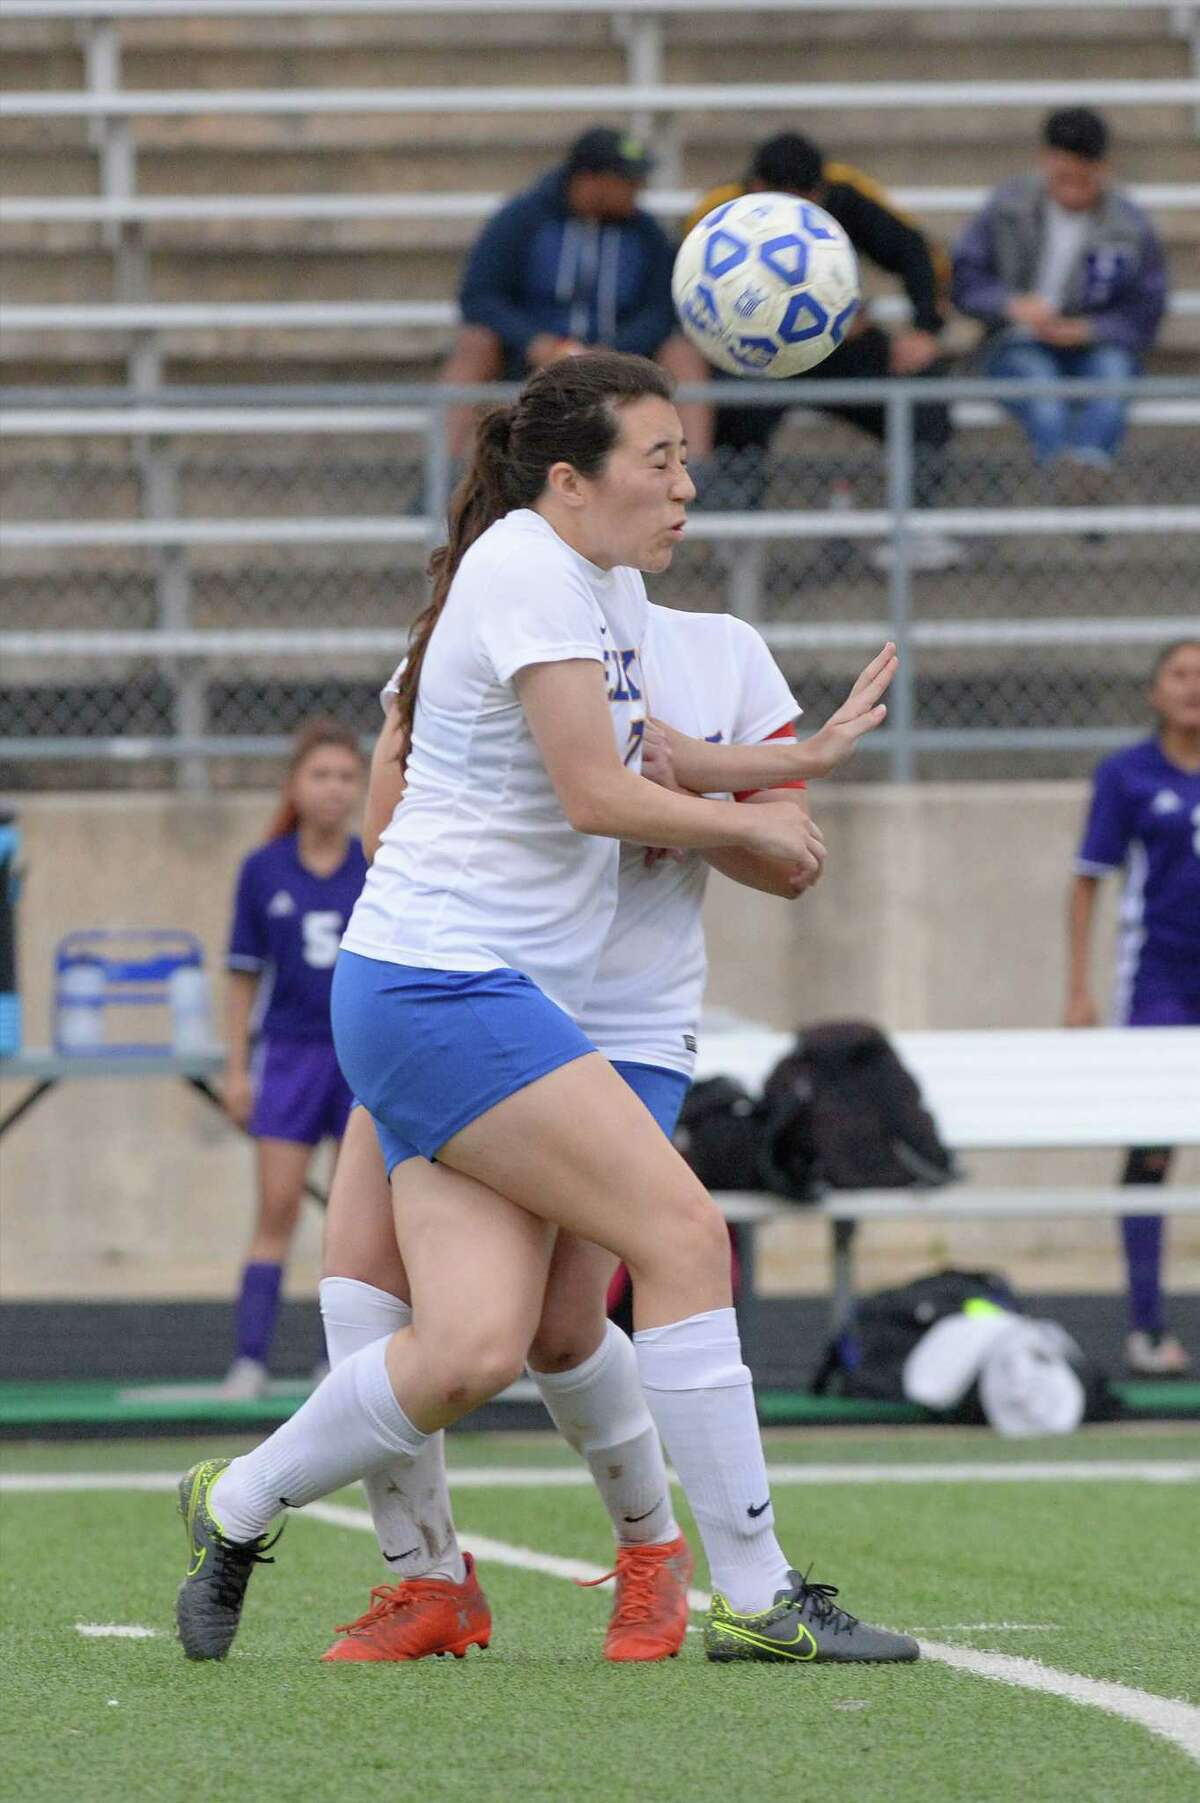 Josephine Henry (7) of Elkins heads a ball during the second half of a girls bi-district soccer playoff game between the Elkins Knights and the Northside Panthers on Friday, March 24, 2017 at Hall Stadium, Missouri City, TX.